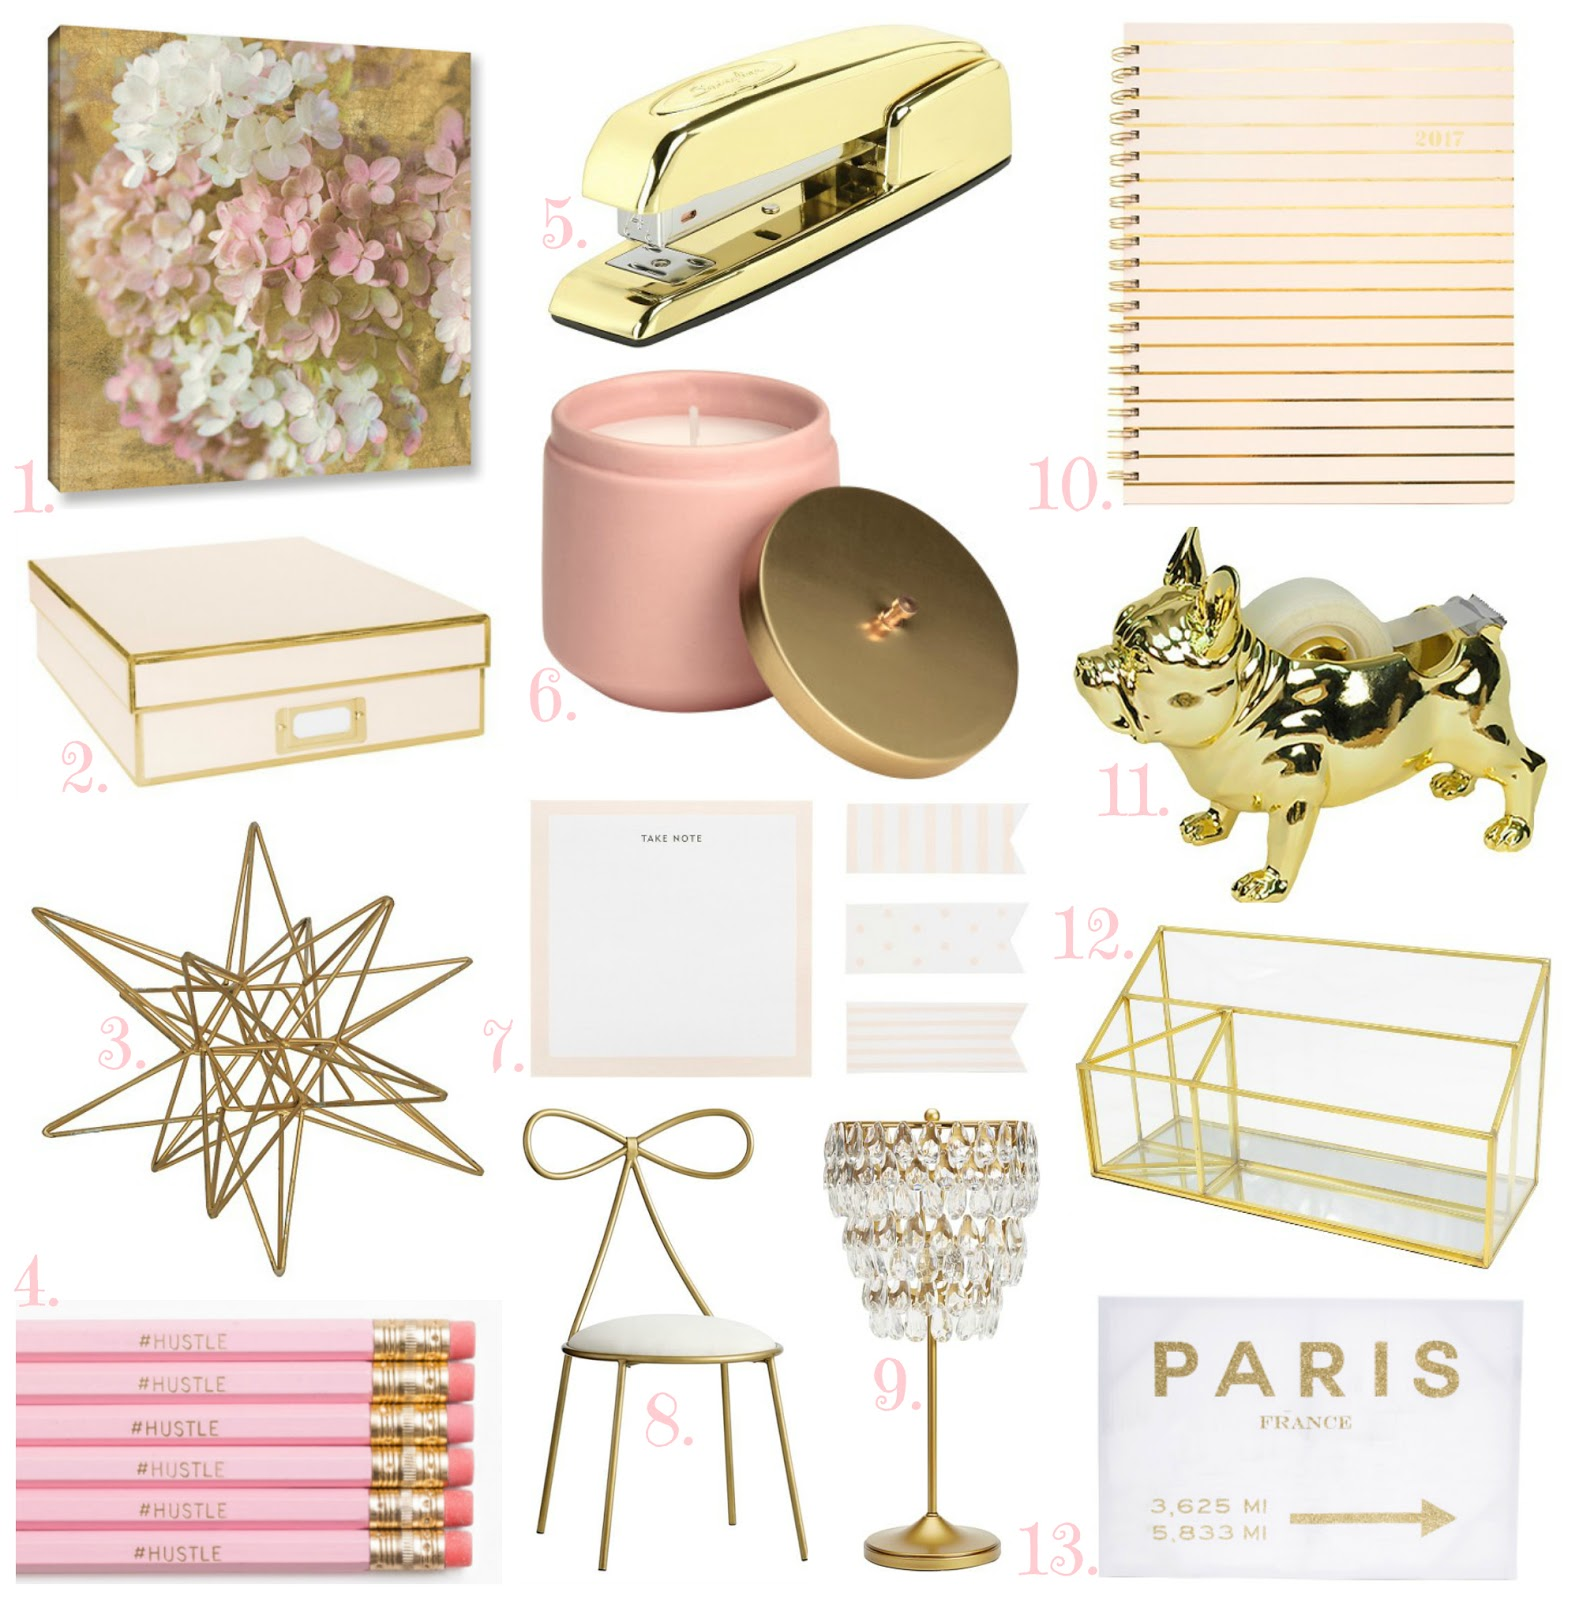 Blush and gold office accessories us217 for Best target home decor 2017